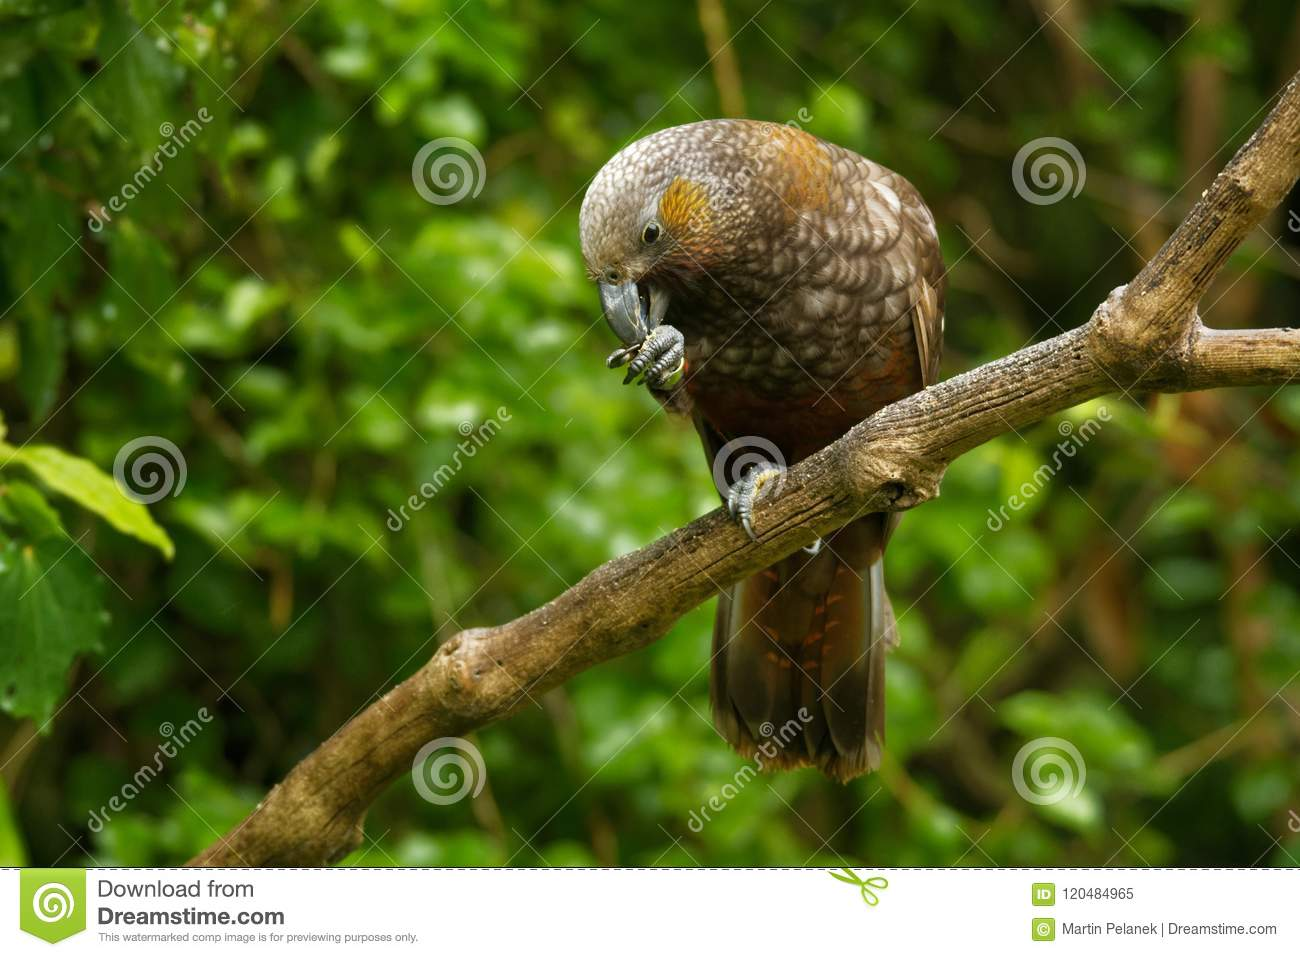 Kaka - Nestor meridionalis - endemic parakeet living in forests of New Zealan